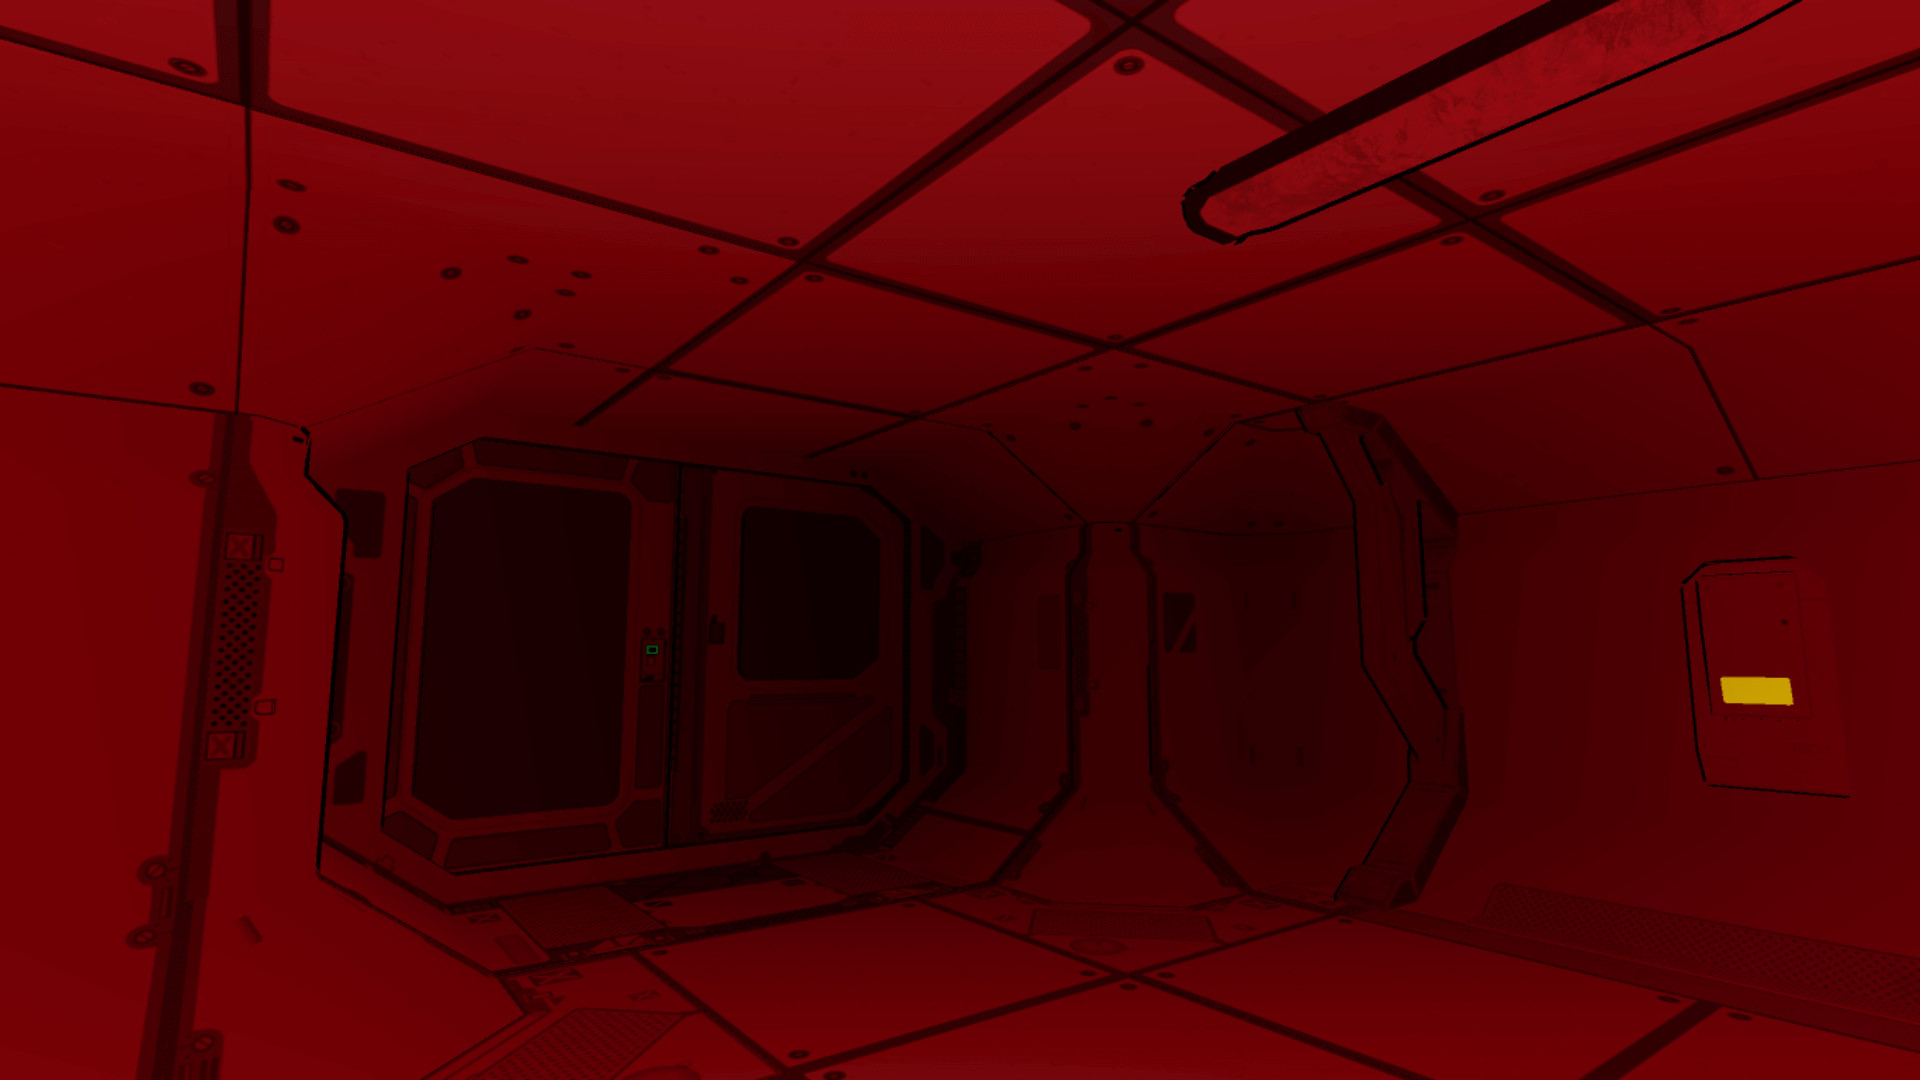 Oculus Quest 游戏《Waifu's Spooky Space Station》幽灵空间站插图(2)